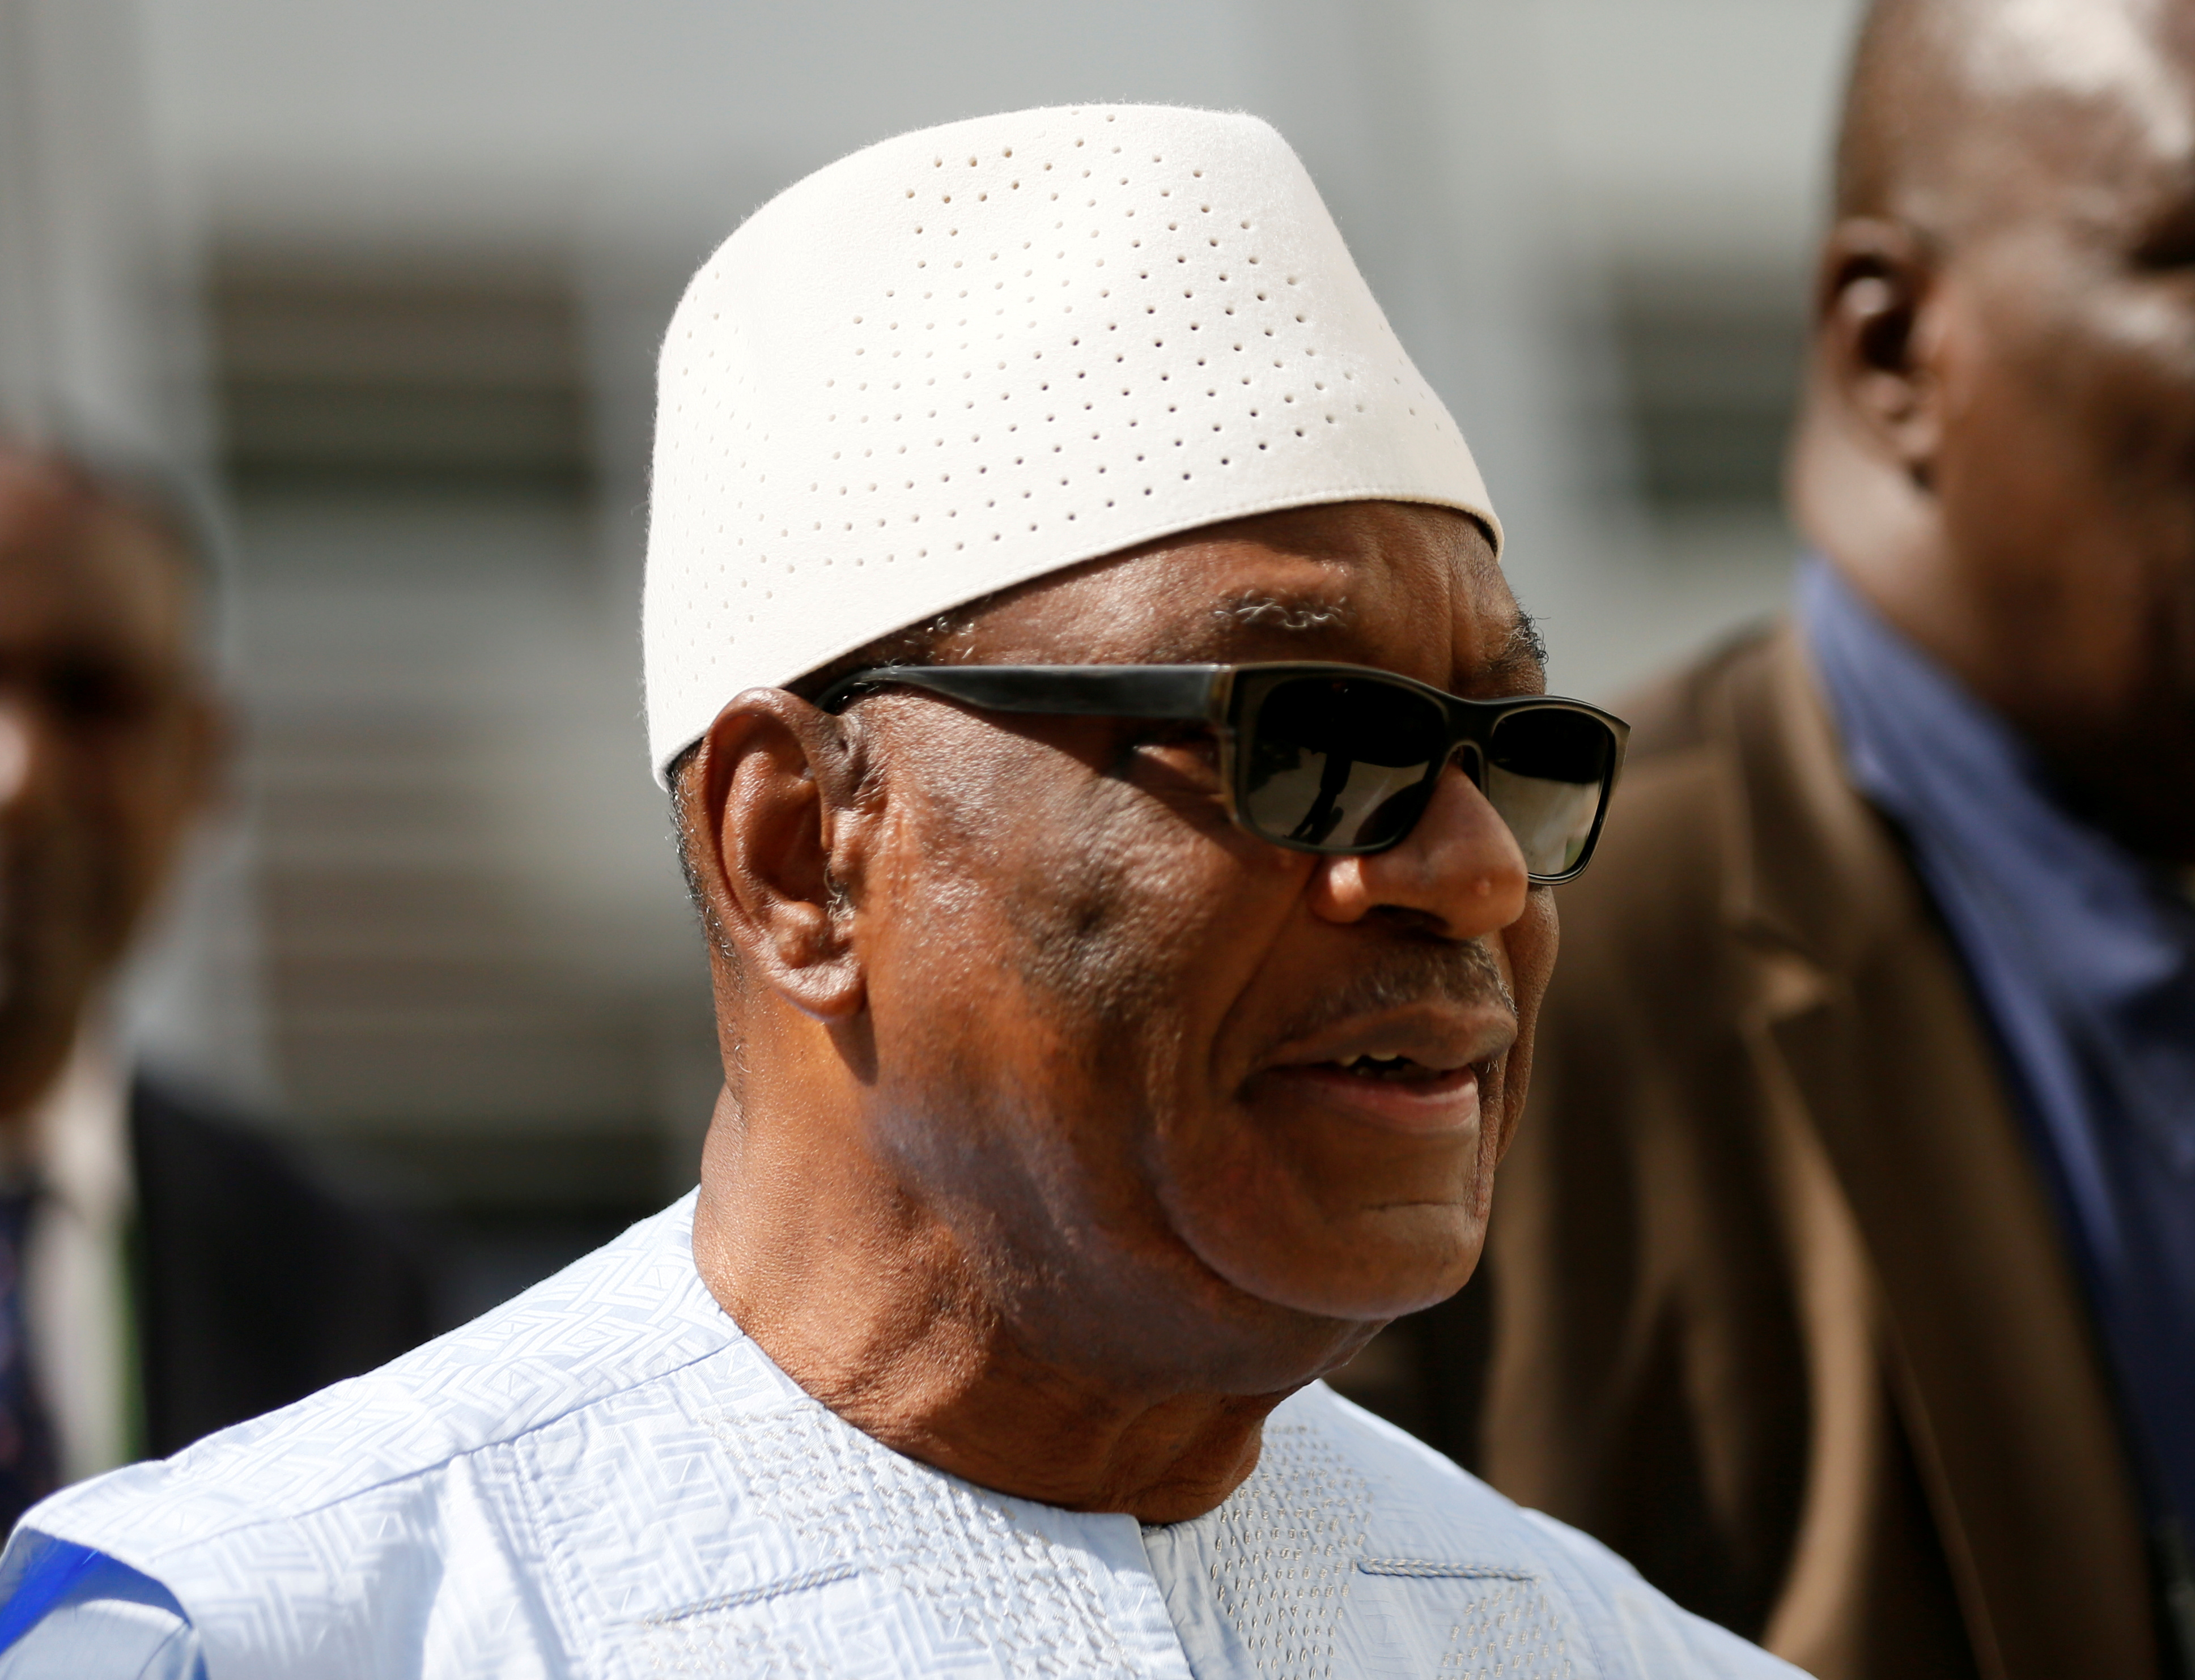 Mali's President Ibrahim Boubacar Keita is seen on arrival for the ECOWAS meeting in Abuja, Nigeria December 16, 2017.